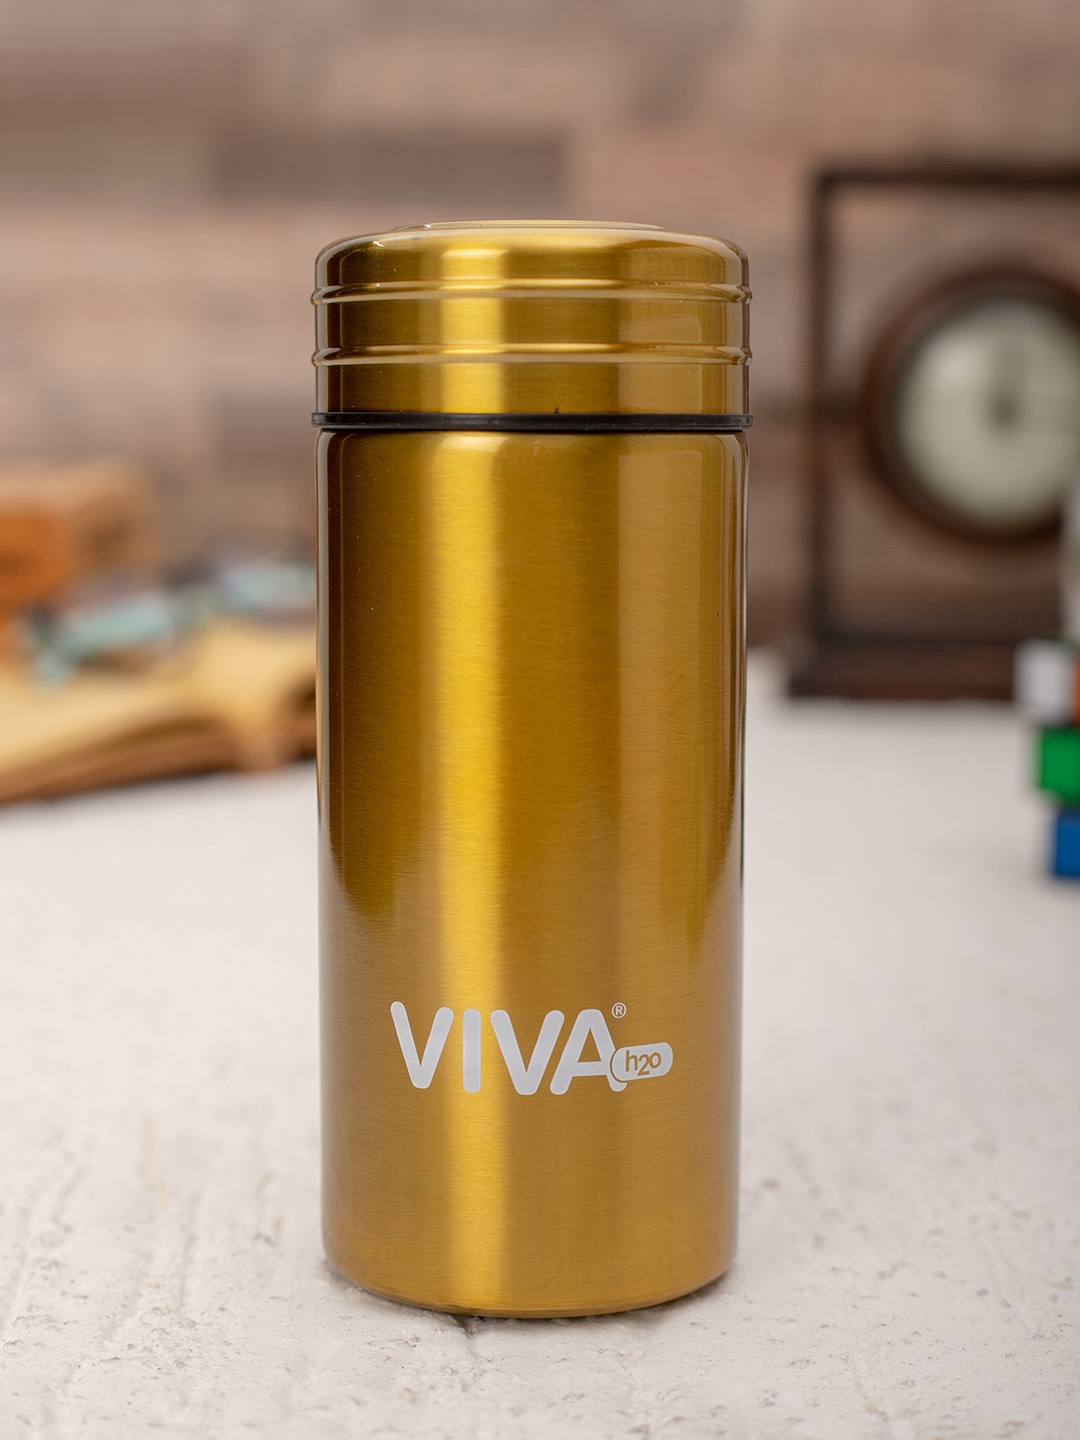 VIVA h2o Unisex Yellow Solid Double Wall Stainless Steel Vaccum Insulated Water Bottle